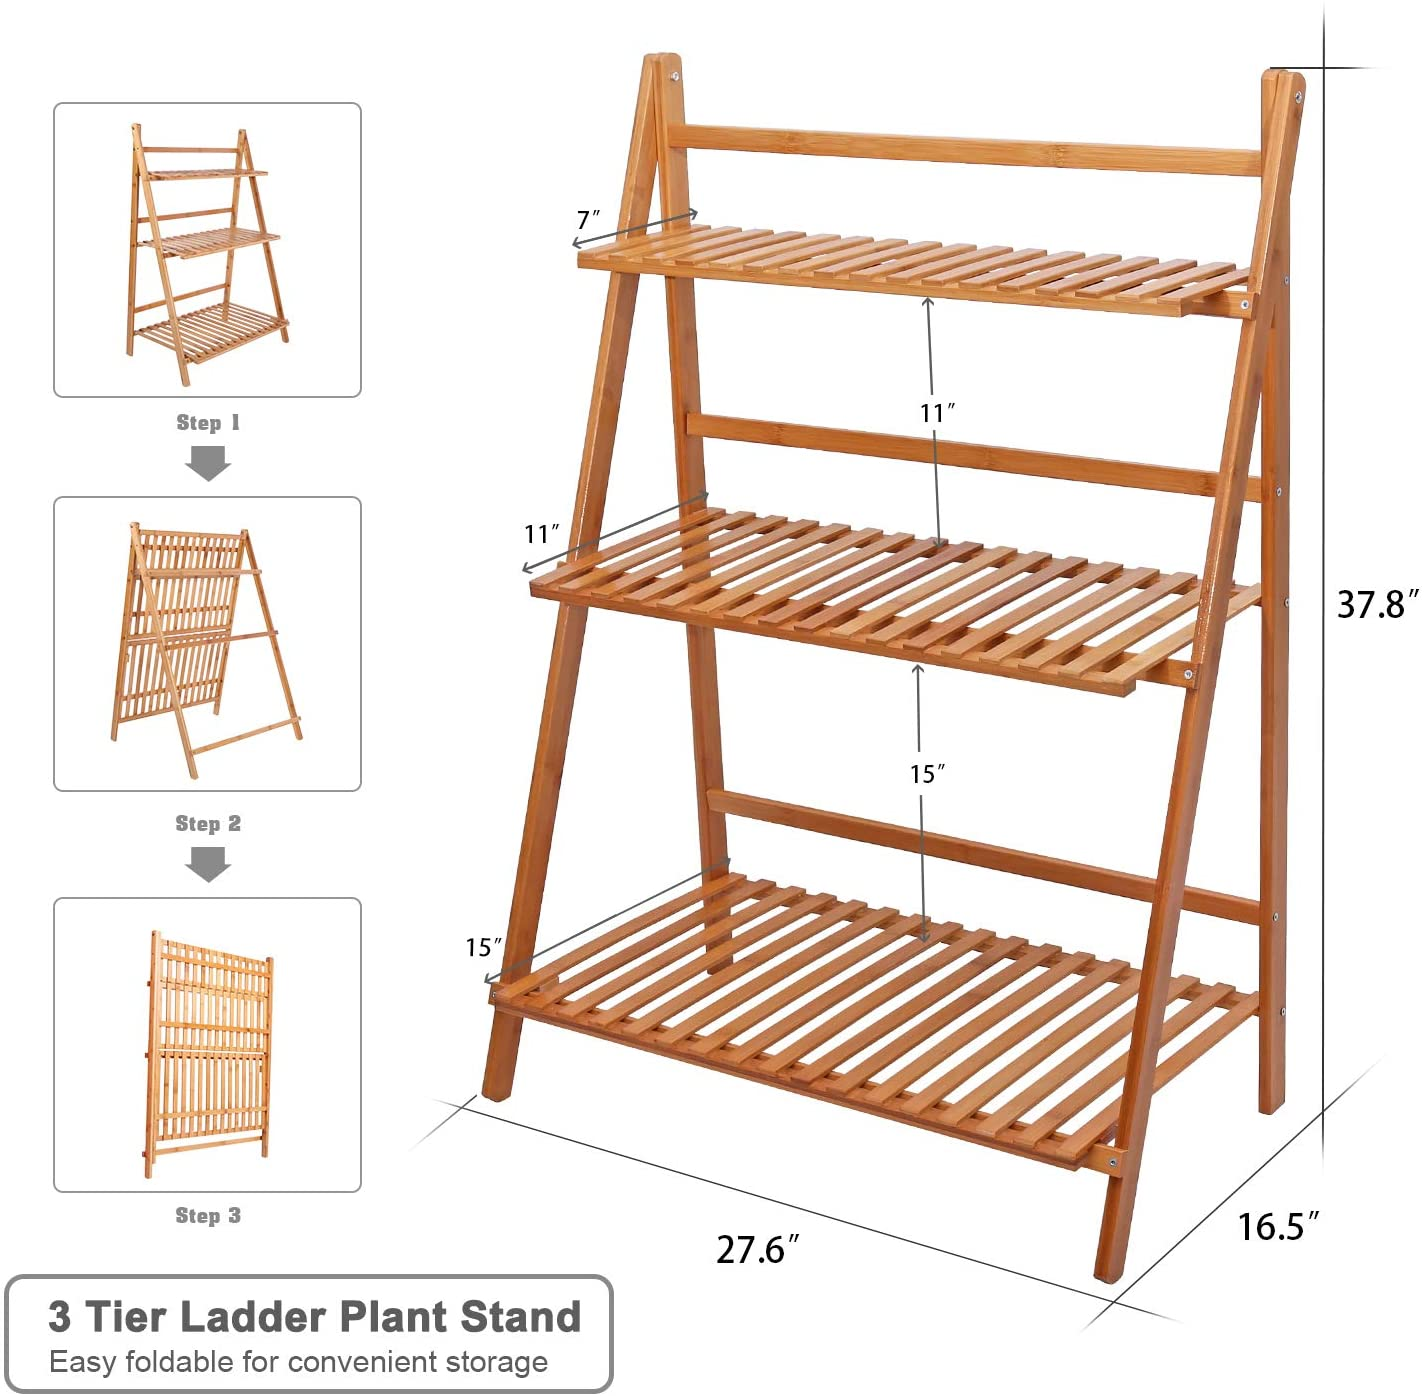 Bamboo Ladder Plant Stand 3 Tier Foldable Flower Pot Display Shelf Rack Buy Raised Garden Rack Wooden Flower Rack Wooden Plants Shelf Product On Alibaba Com